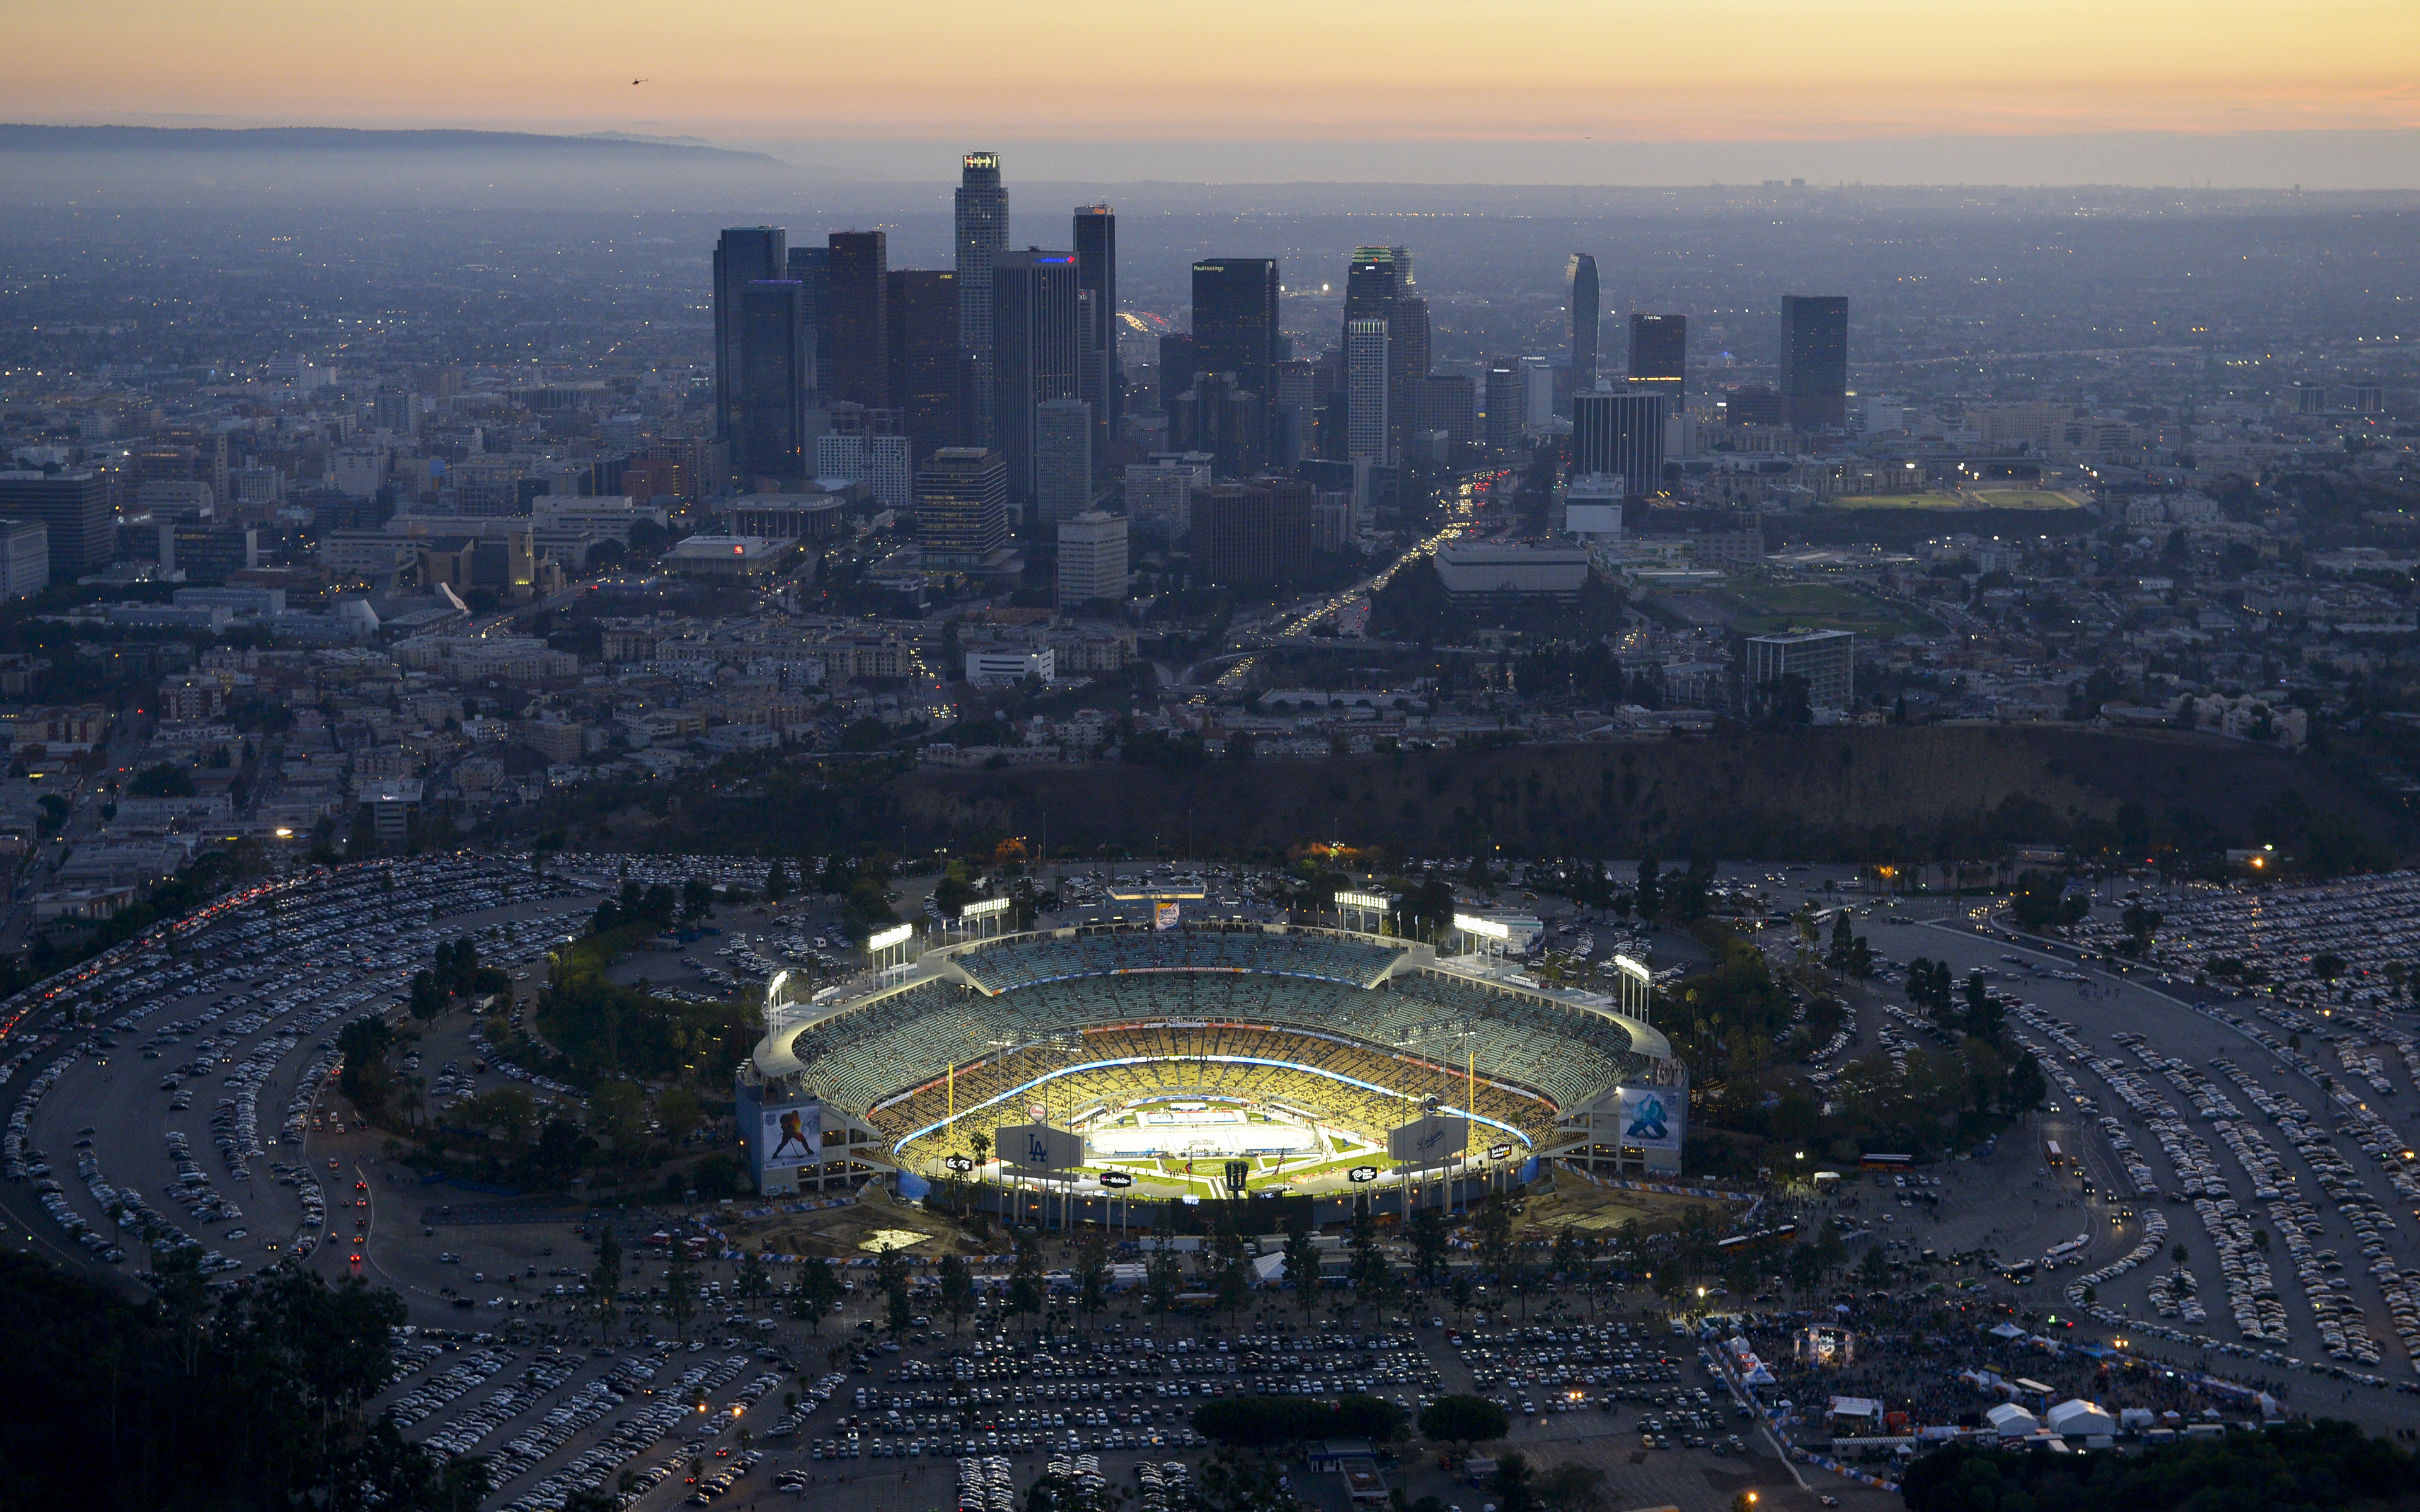 Los Angeles Dodgers ballpark Dodger Stadium Chavez Ravine 3840x2400